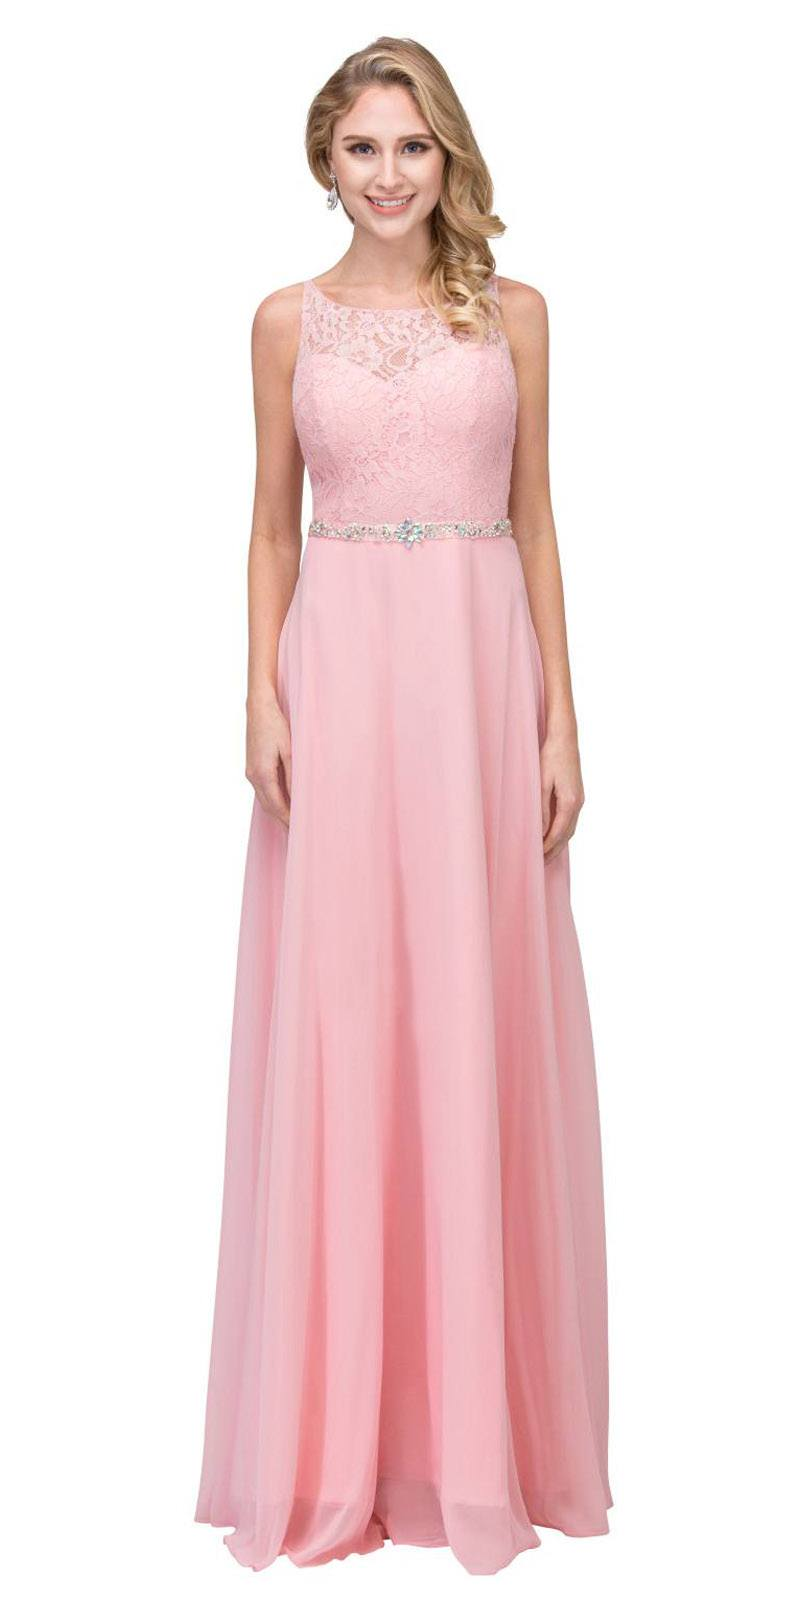 4c282c443b0 A-Line Chiffon Long Formal Dress Blush Lace Bodice Rhinestone Waist ...